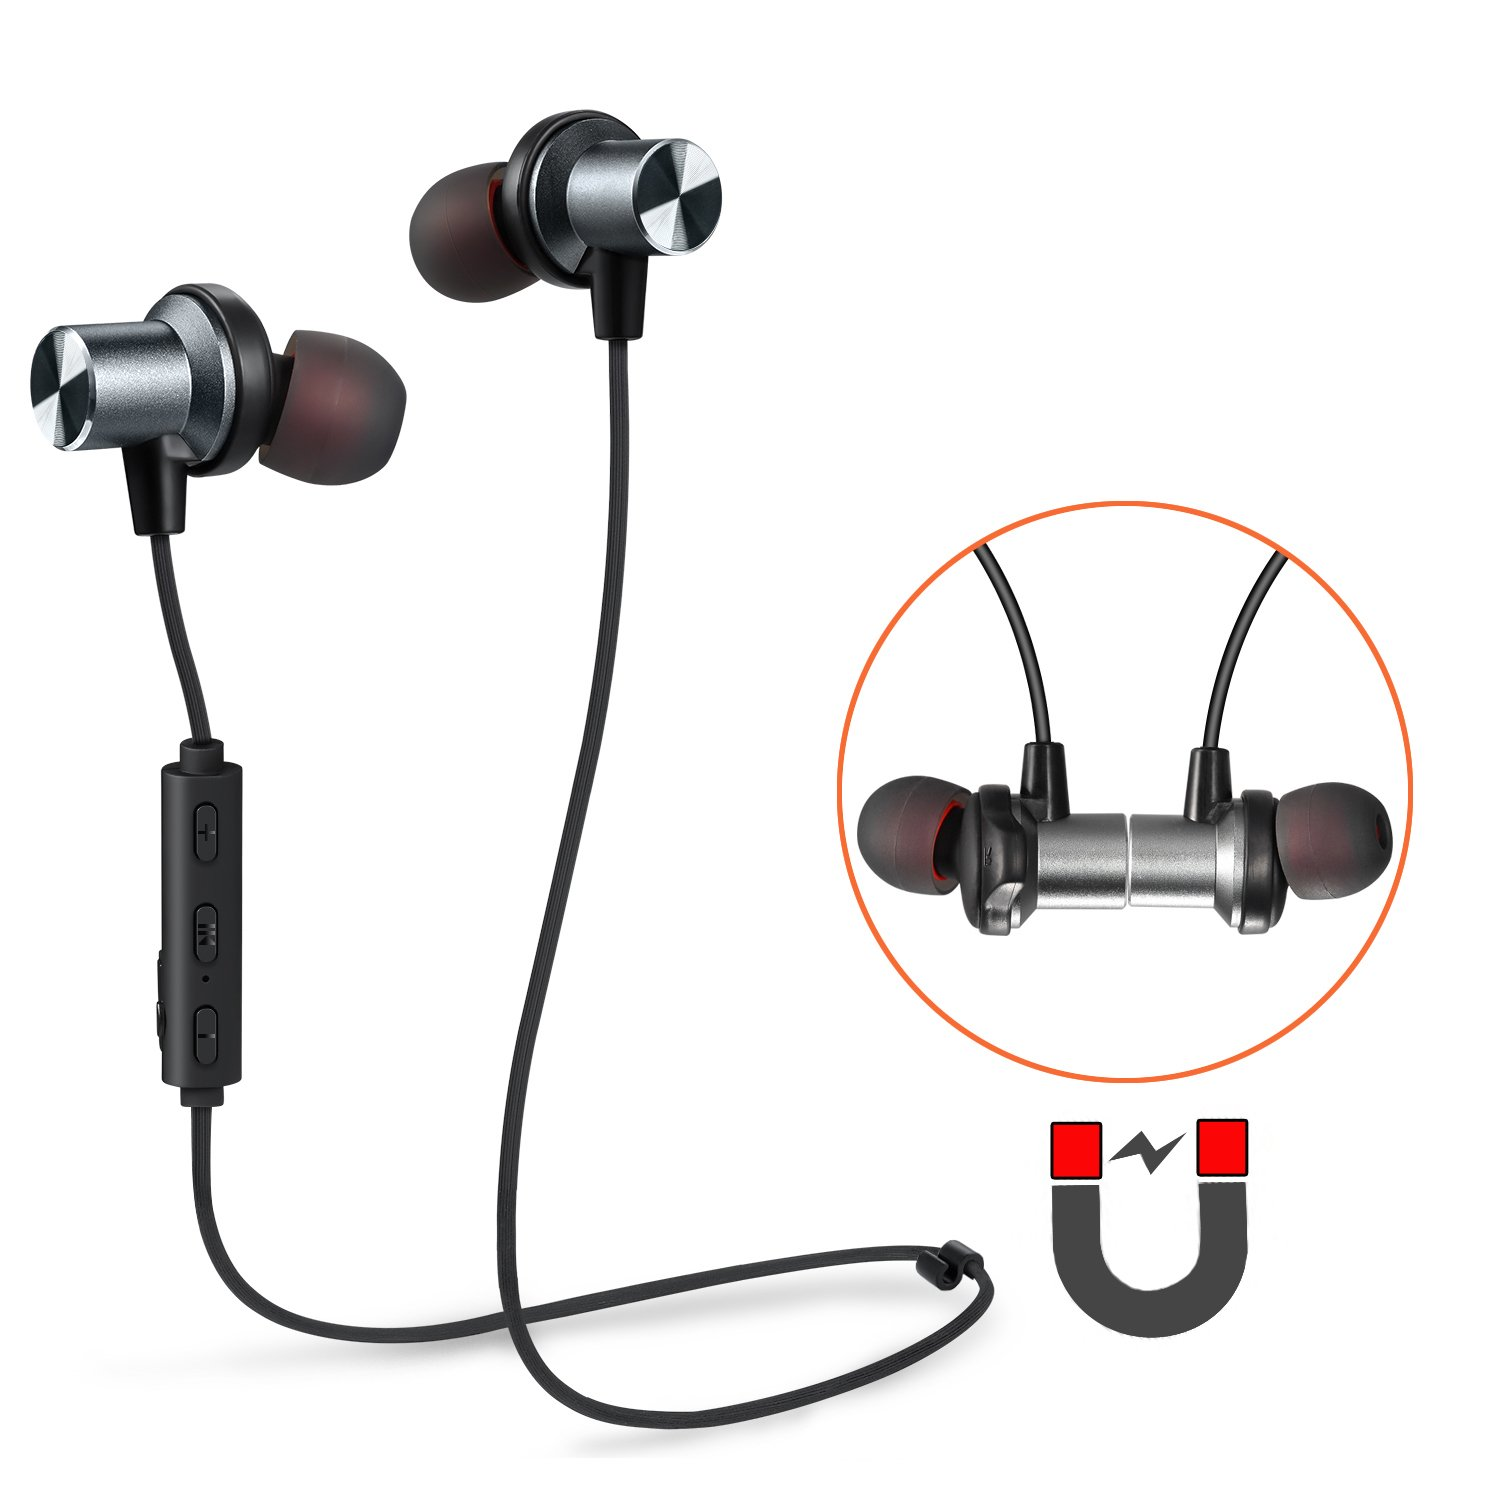 Bluetooth Earbuds, Tesson Wireless V4.1 Magnetic Headphones Super Bass Stereo Noise Cancelling Earphones, Sweat Proof Comfortable, Secure Fit Sports Mic